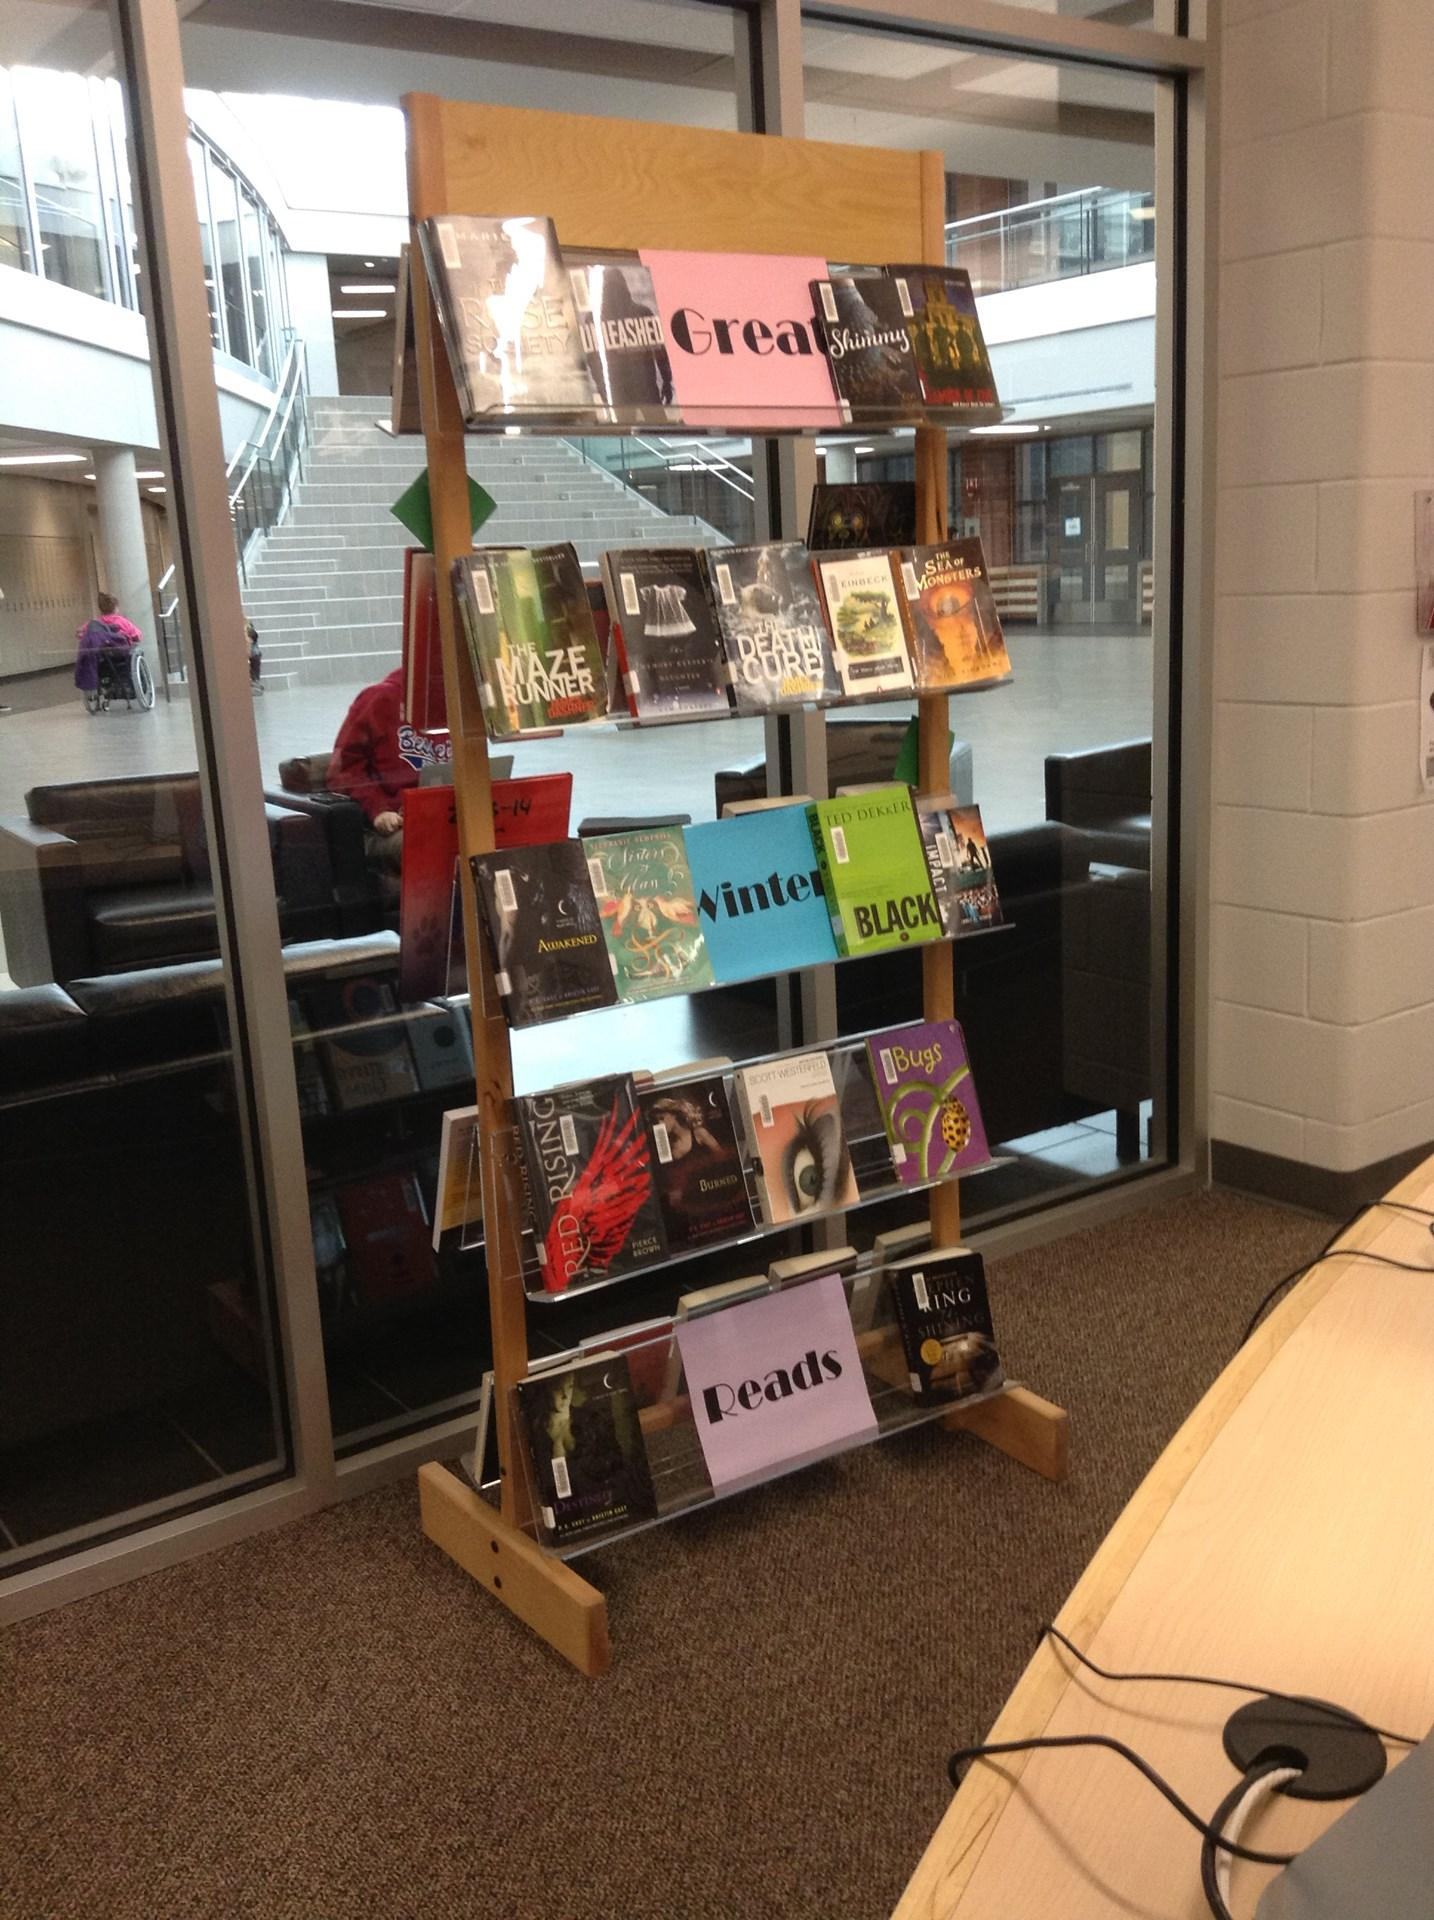 Display of books